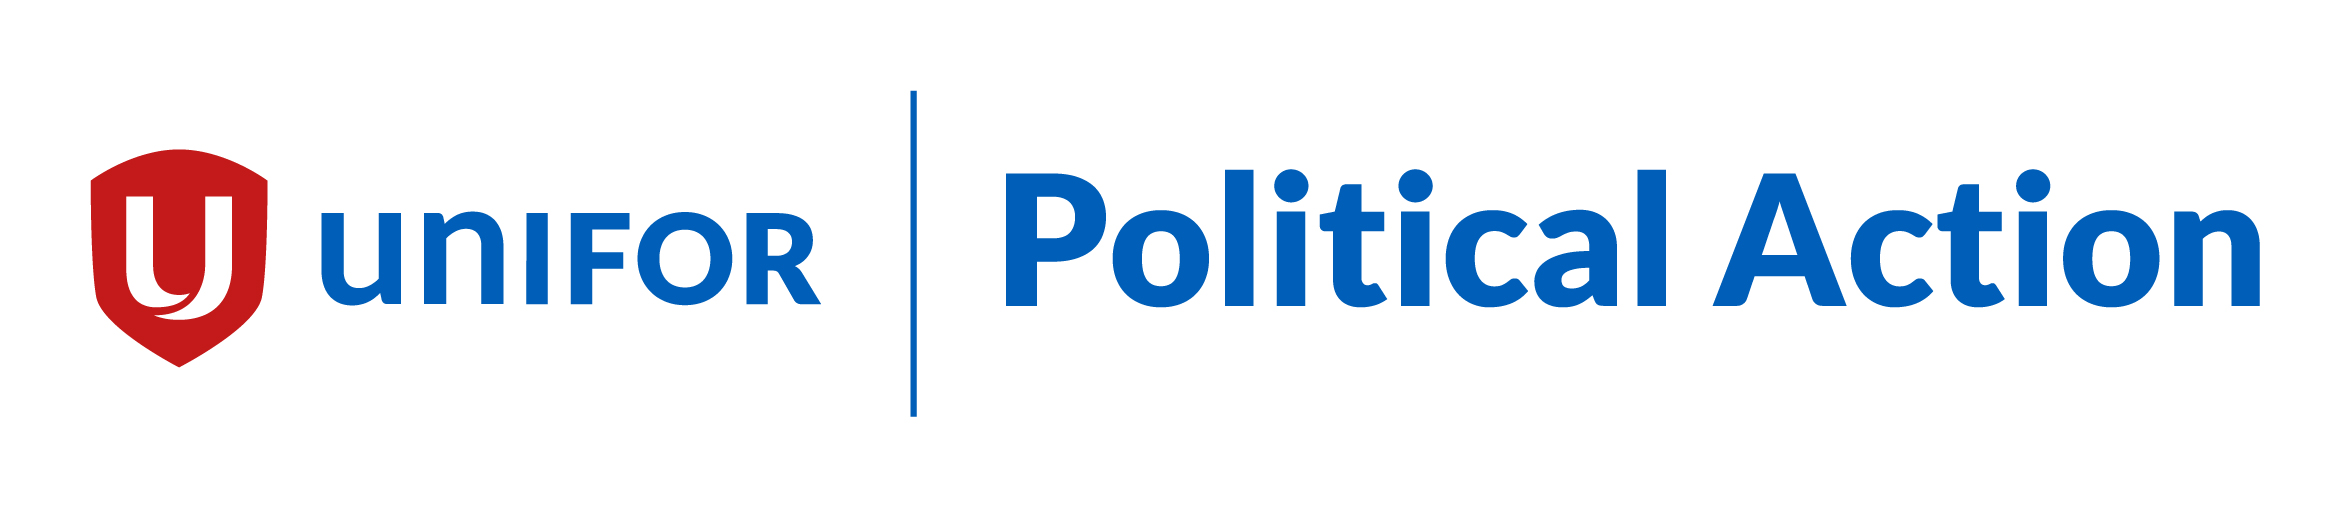 Political Action Hub logo